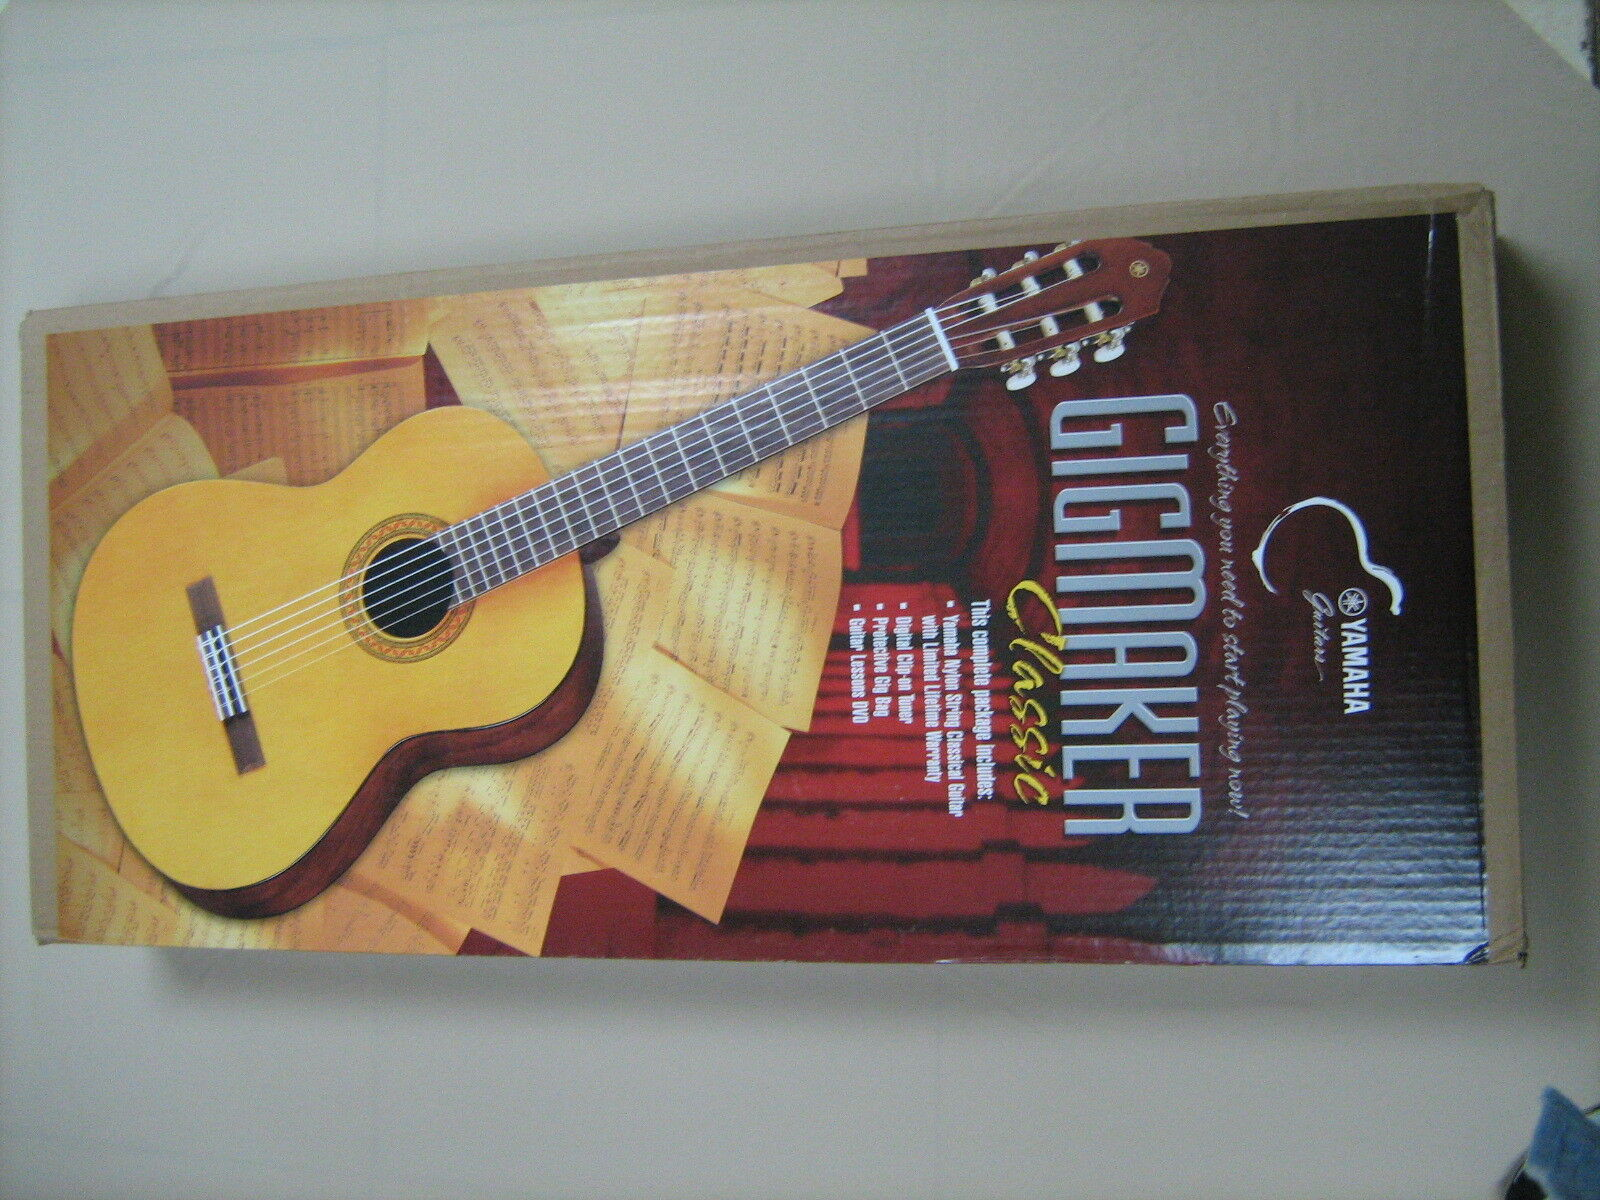 GUITAR ACOUSTIC YAMAHA C80 musical instruments NEW C 80 FREE CASE & TUNER CGT1